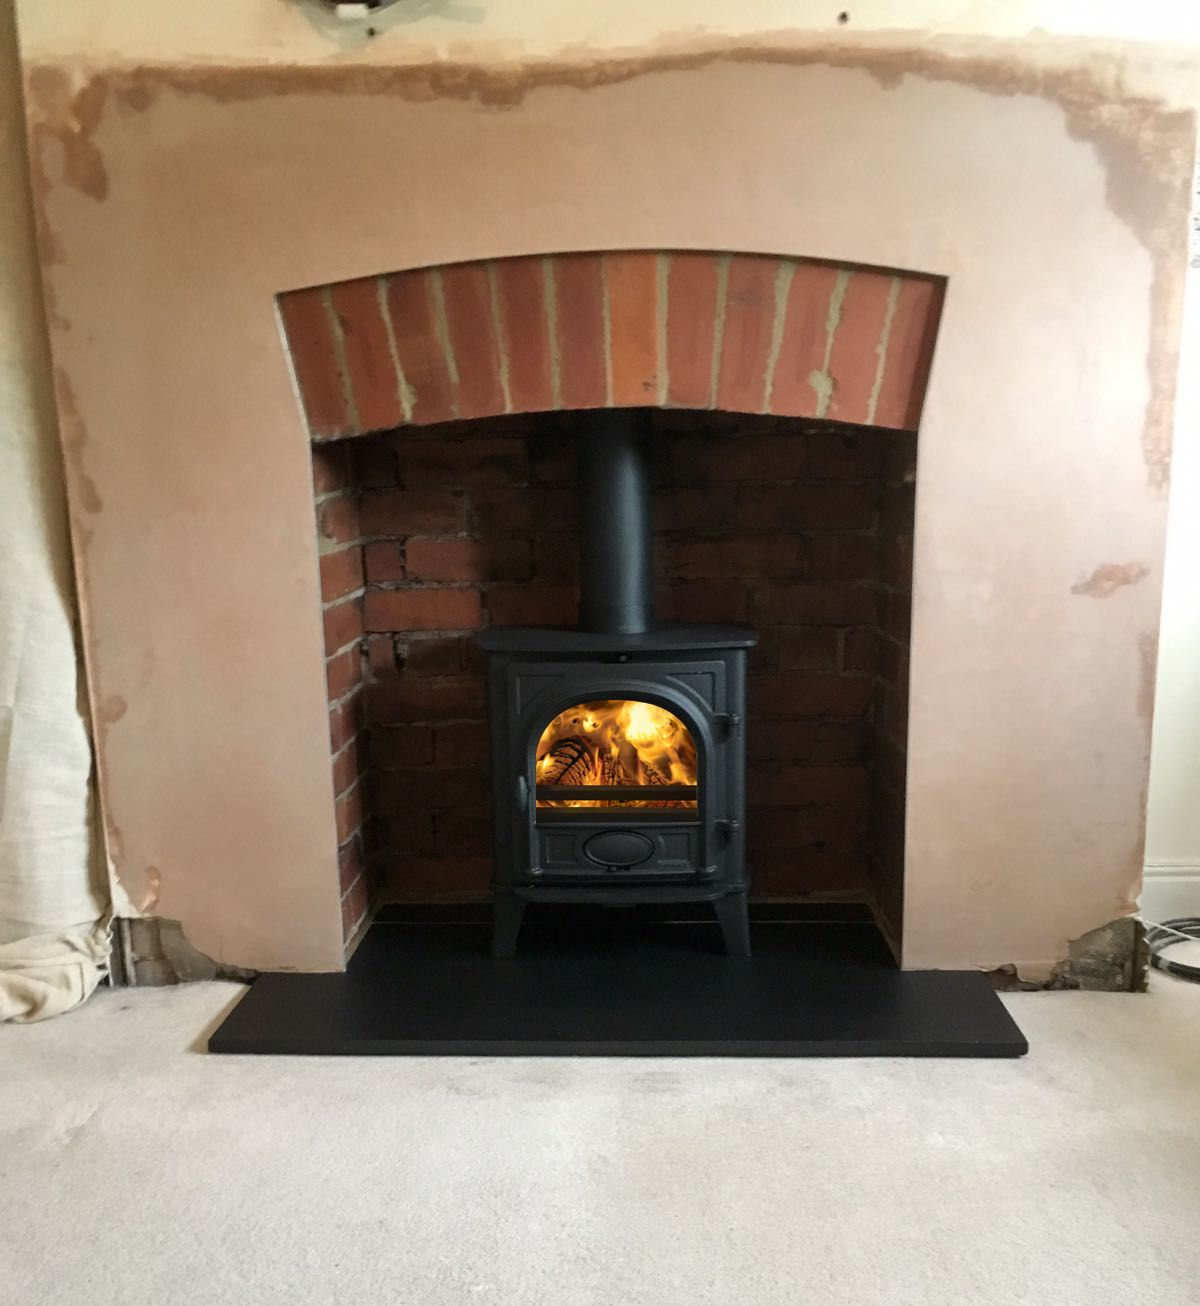 stovax stockton 5 wood burning stove knocked out fireplace to